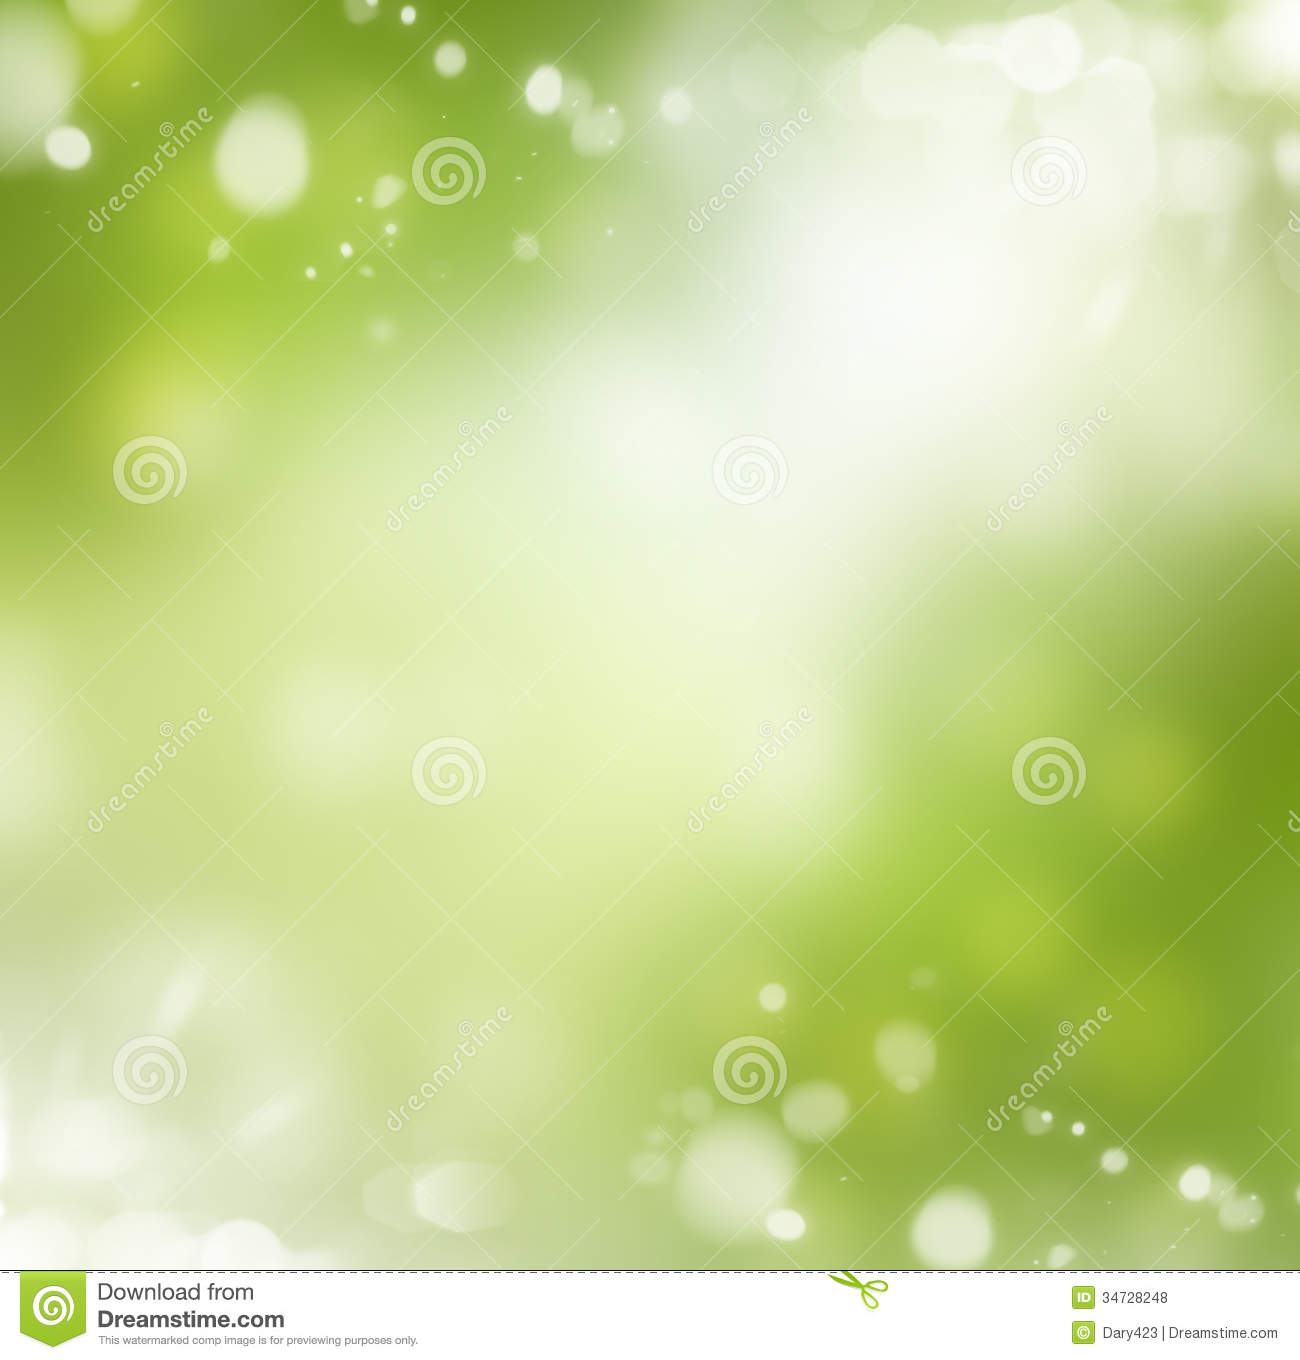 spring abstract background - photo #11